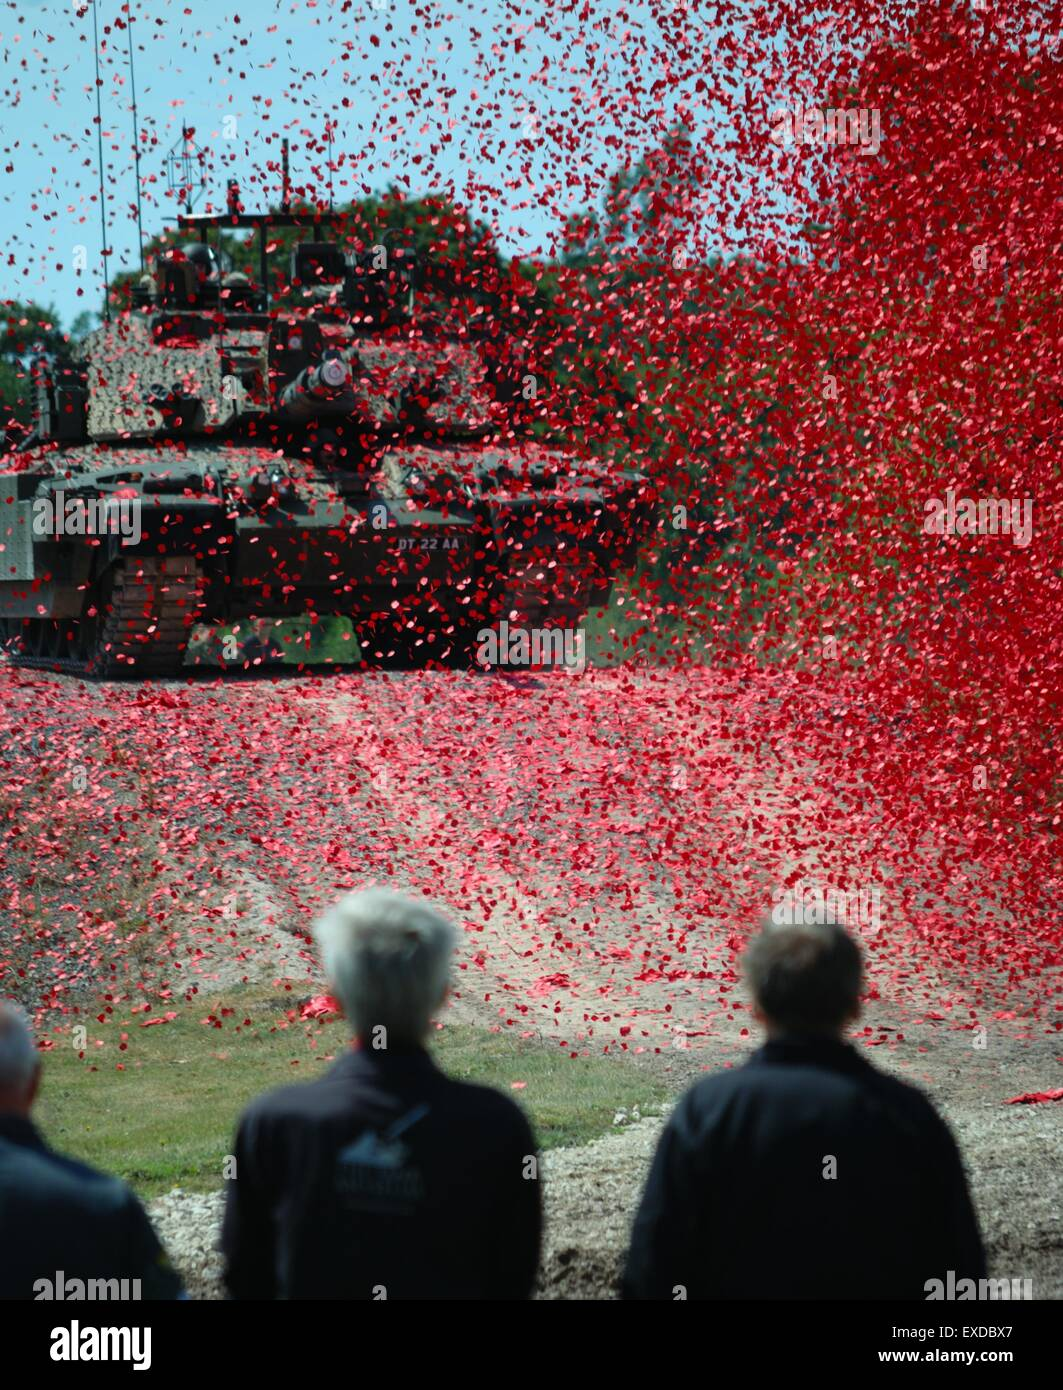 A tank is shrouded in poppies during the World War I centenary event at Bovington Tank Museum 2014. - Stock Image